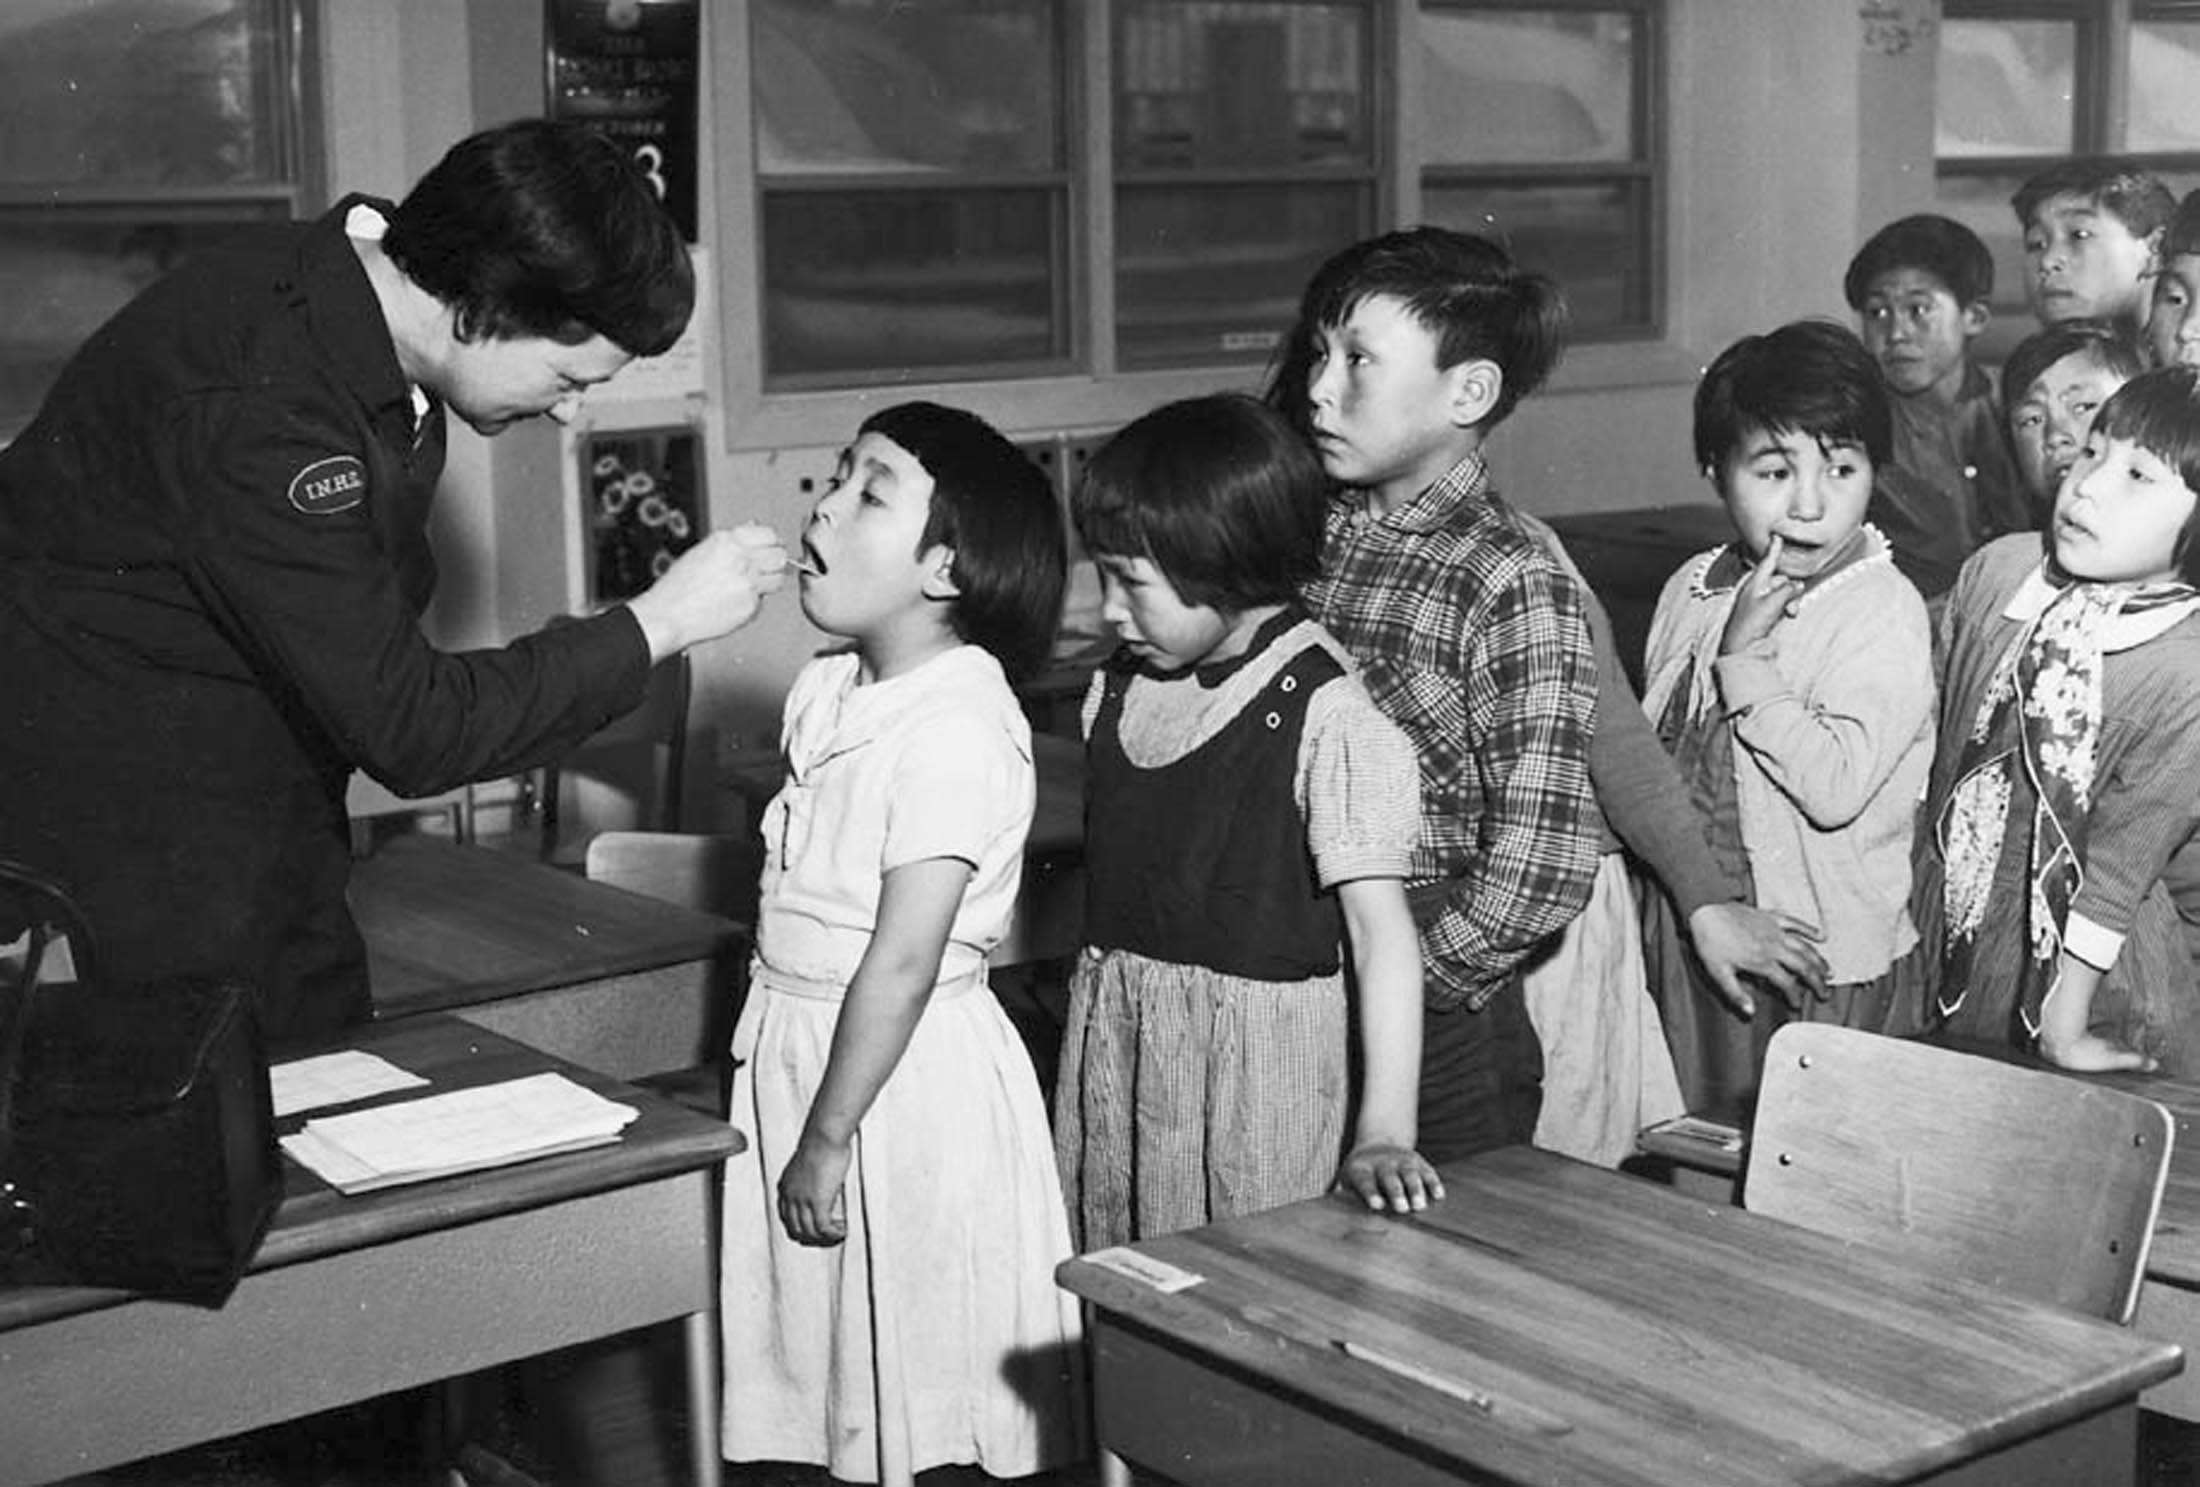 Canadian panel calls for redress, healing after 'cultural genocide' at Indian residential schools